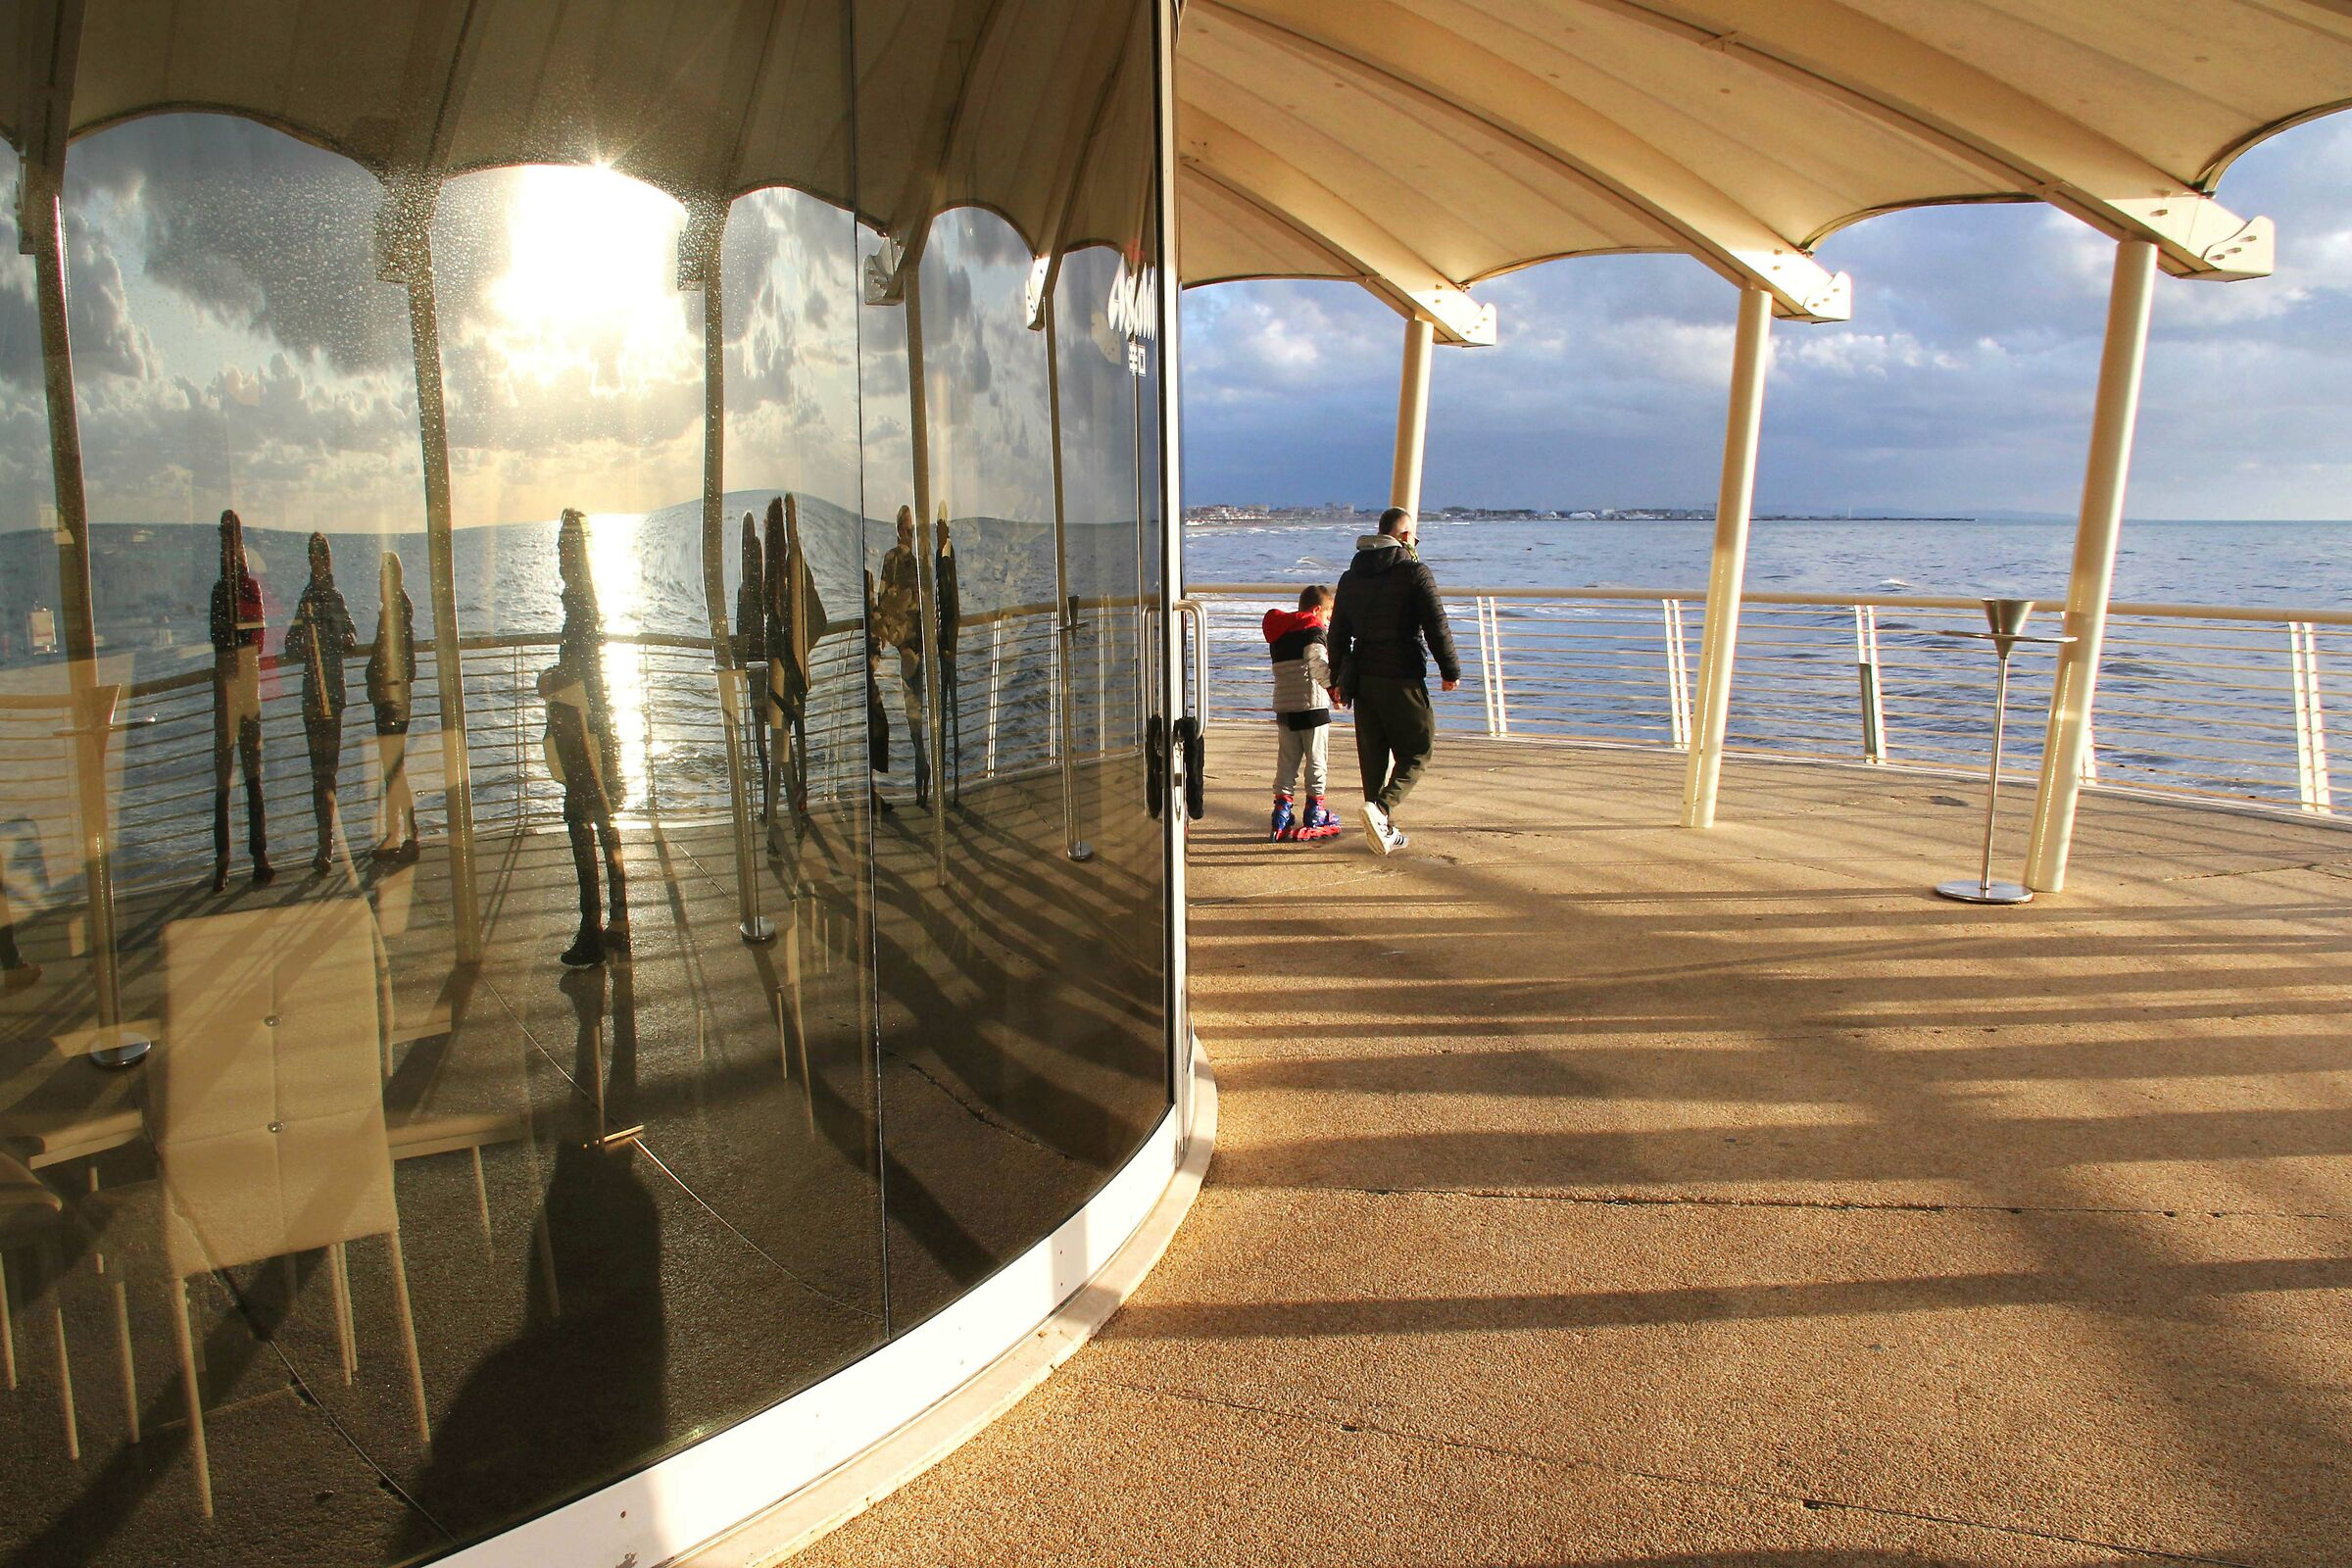 Reflections on the wharf...